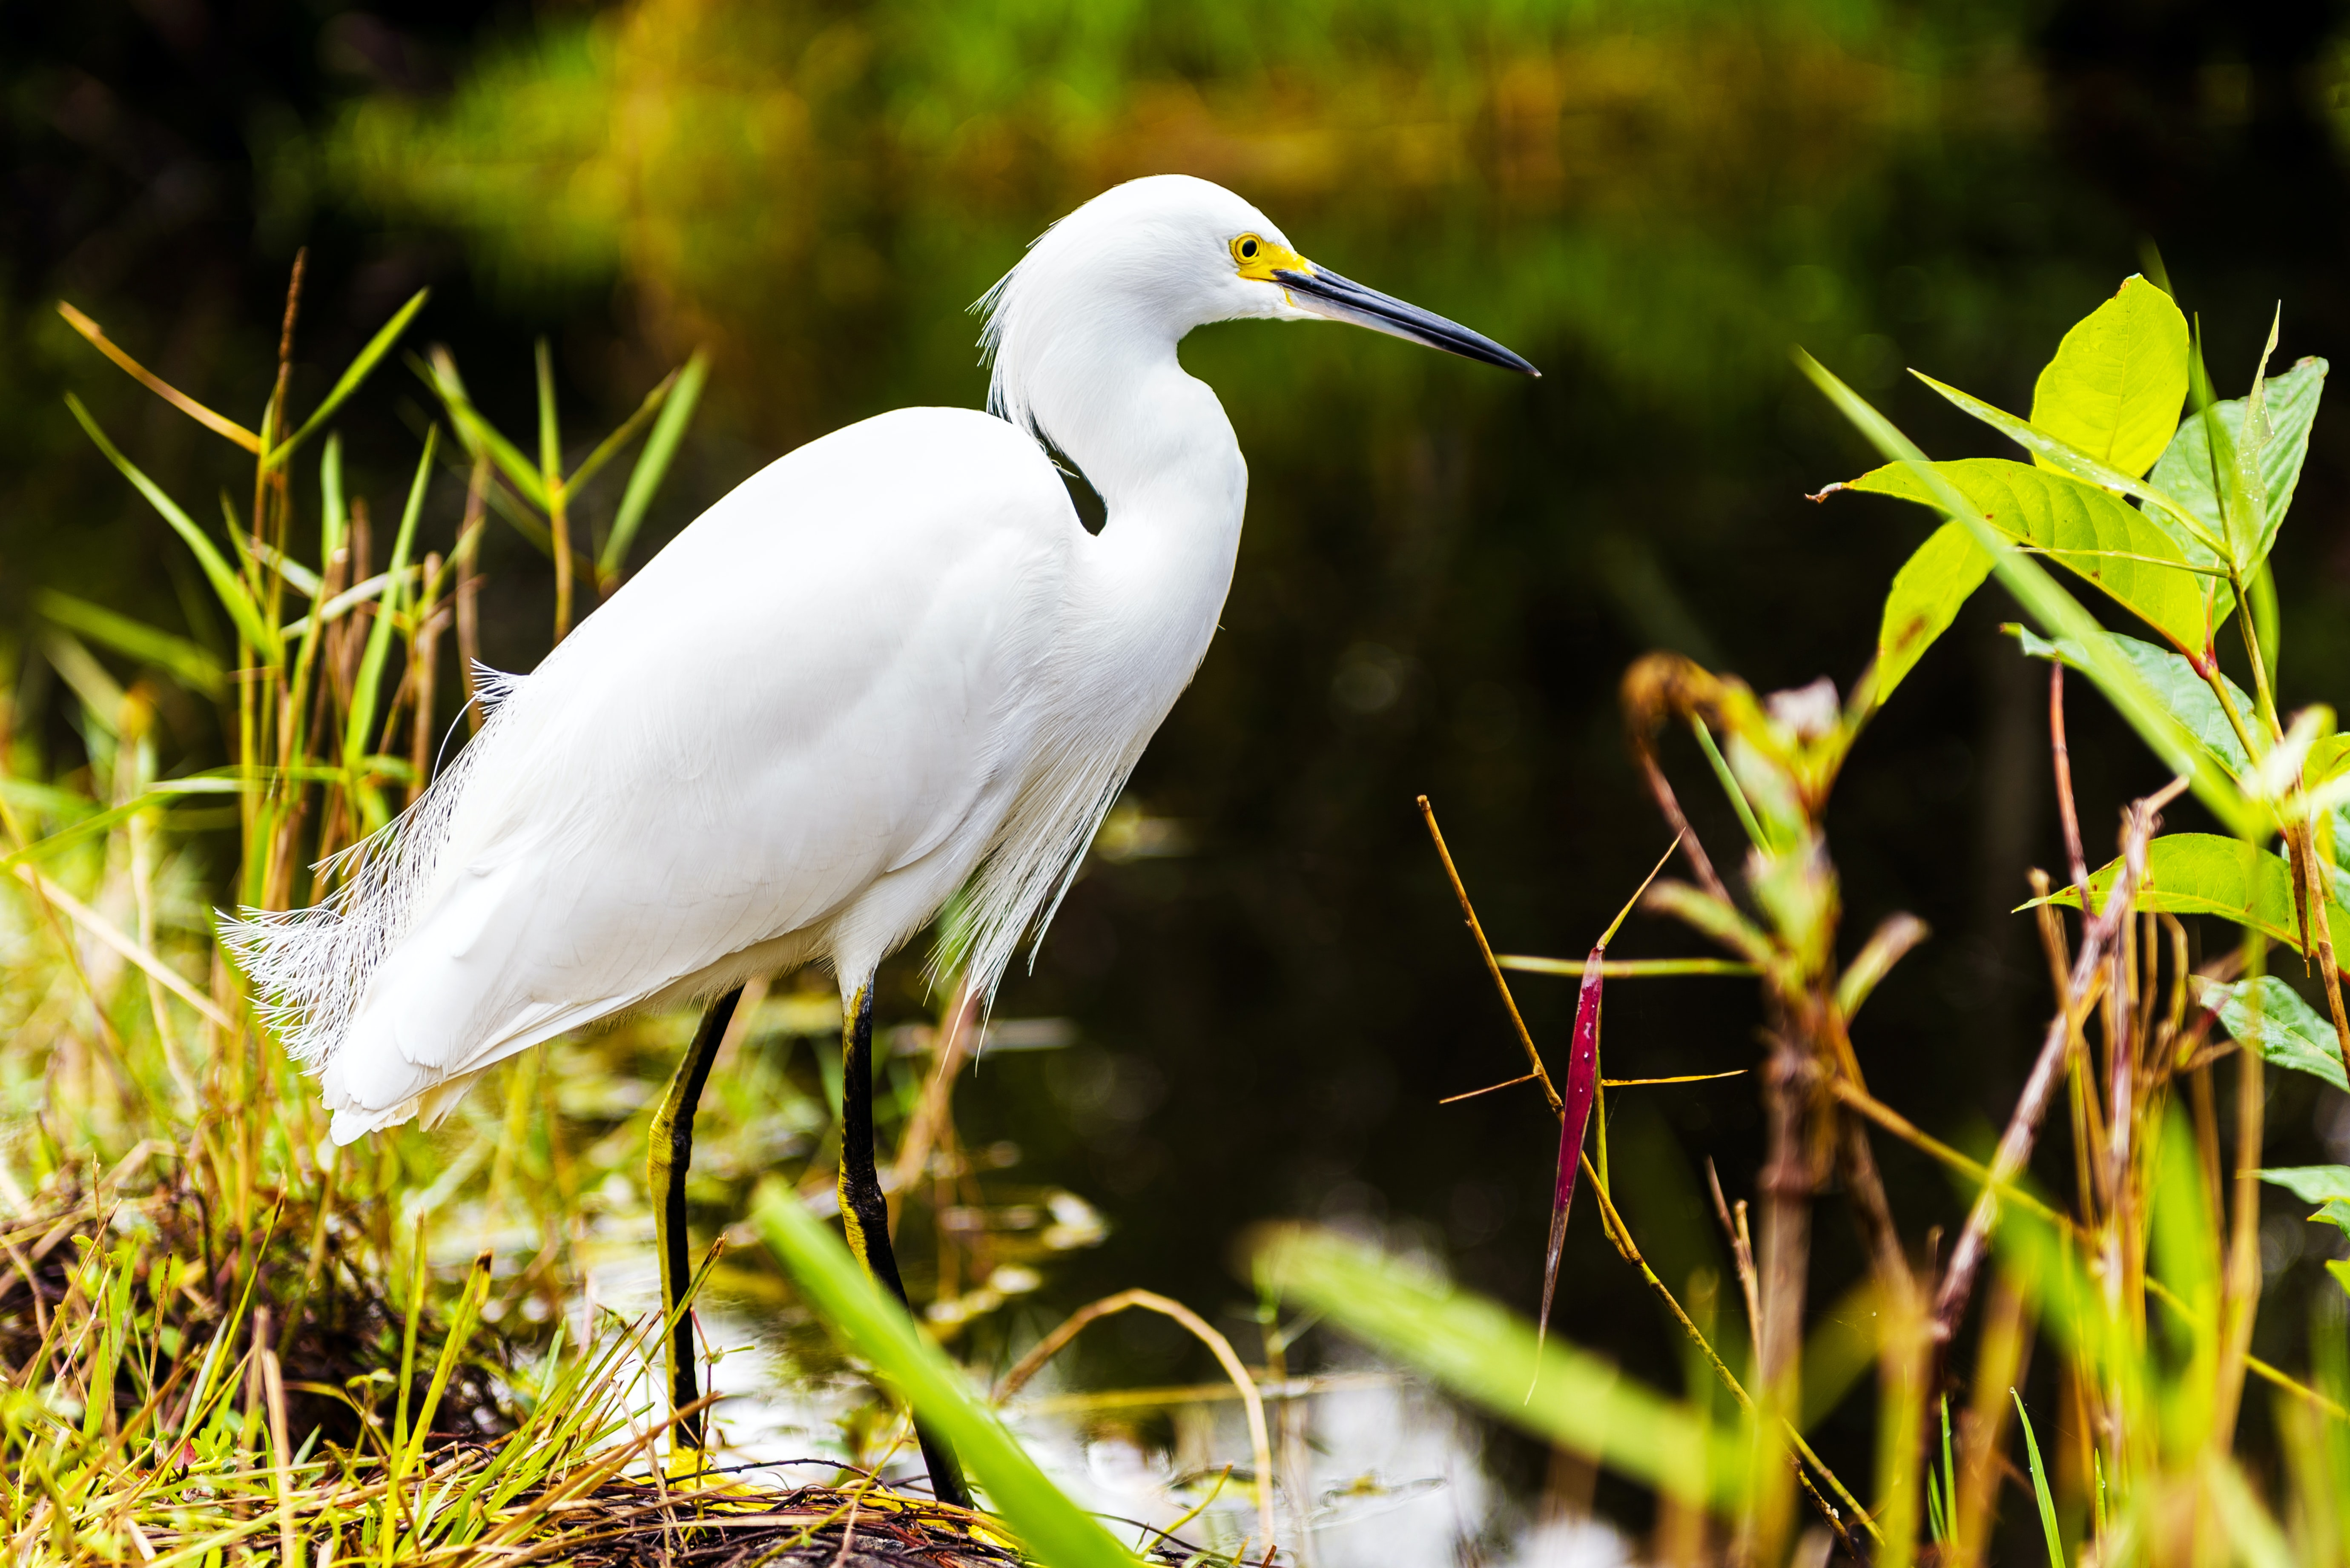 A white heron on the edge of the water with aquatic plants surrounding them